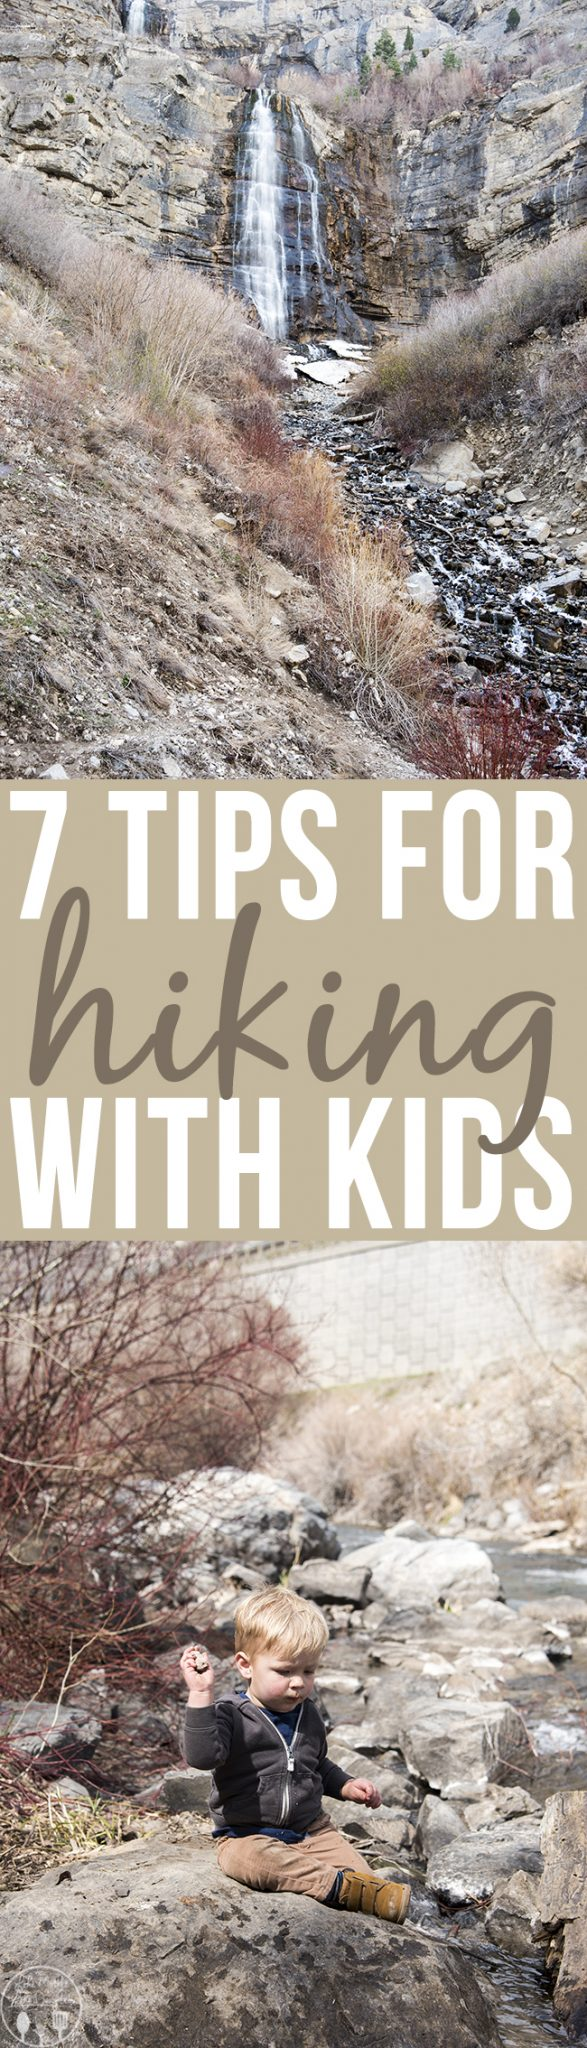 7 tips for hiking with kids - simple ideas to make your hiking experience easier and more enjoyable with kids!